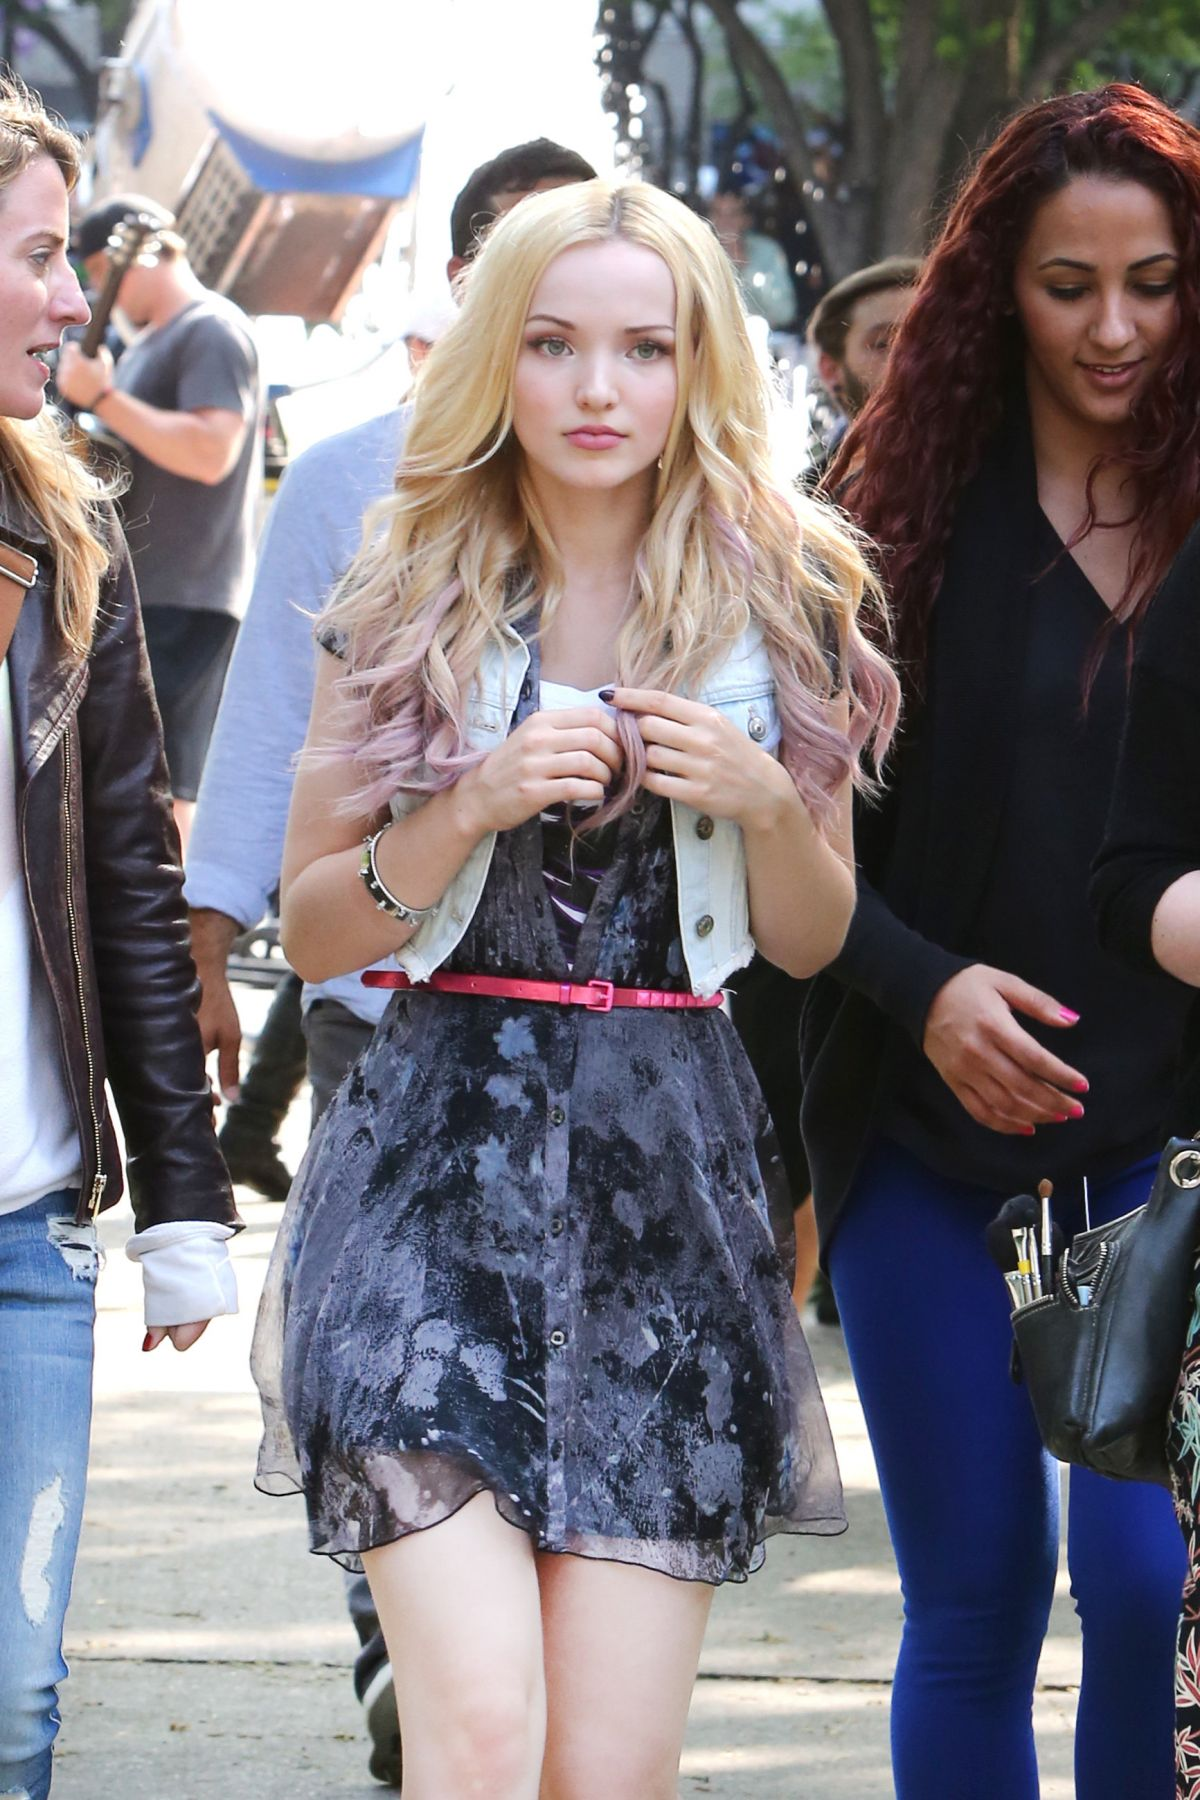 DOVE CAMERON on the Set of Shawn Mendes I Belive Music Video in Toronto 06/04/2015